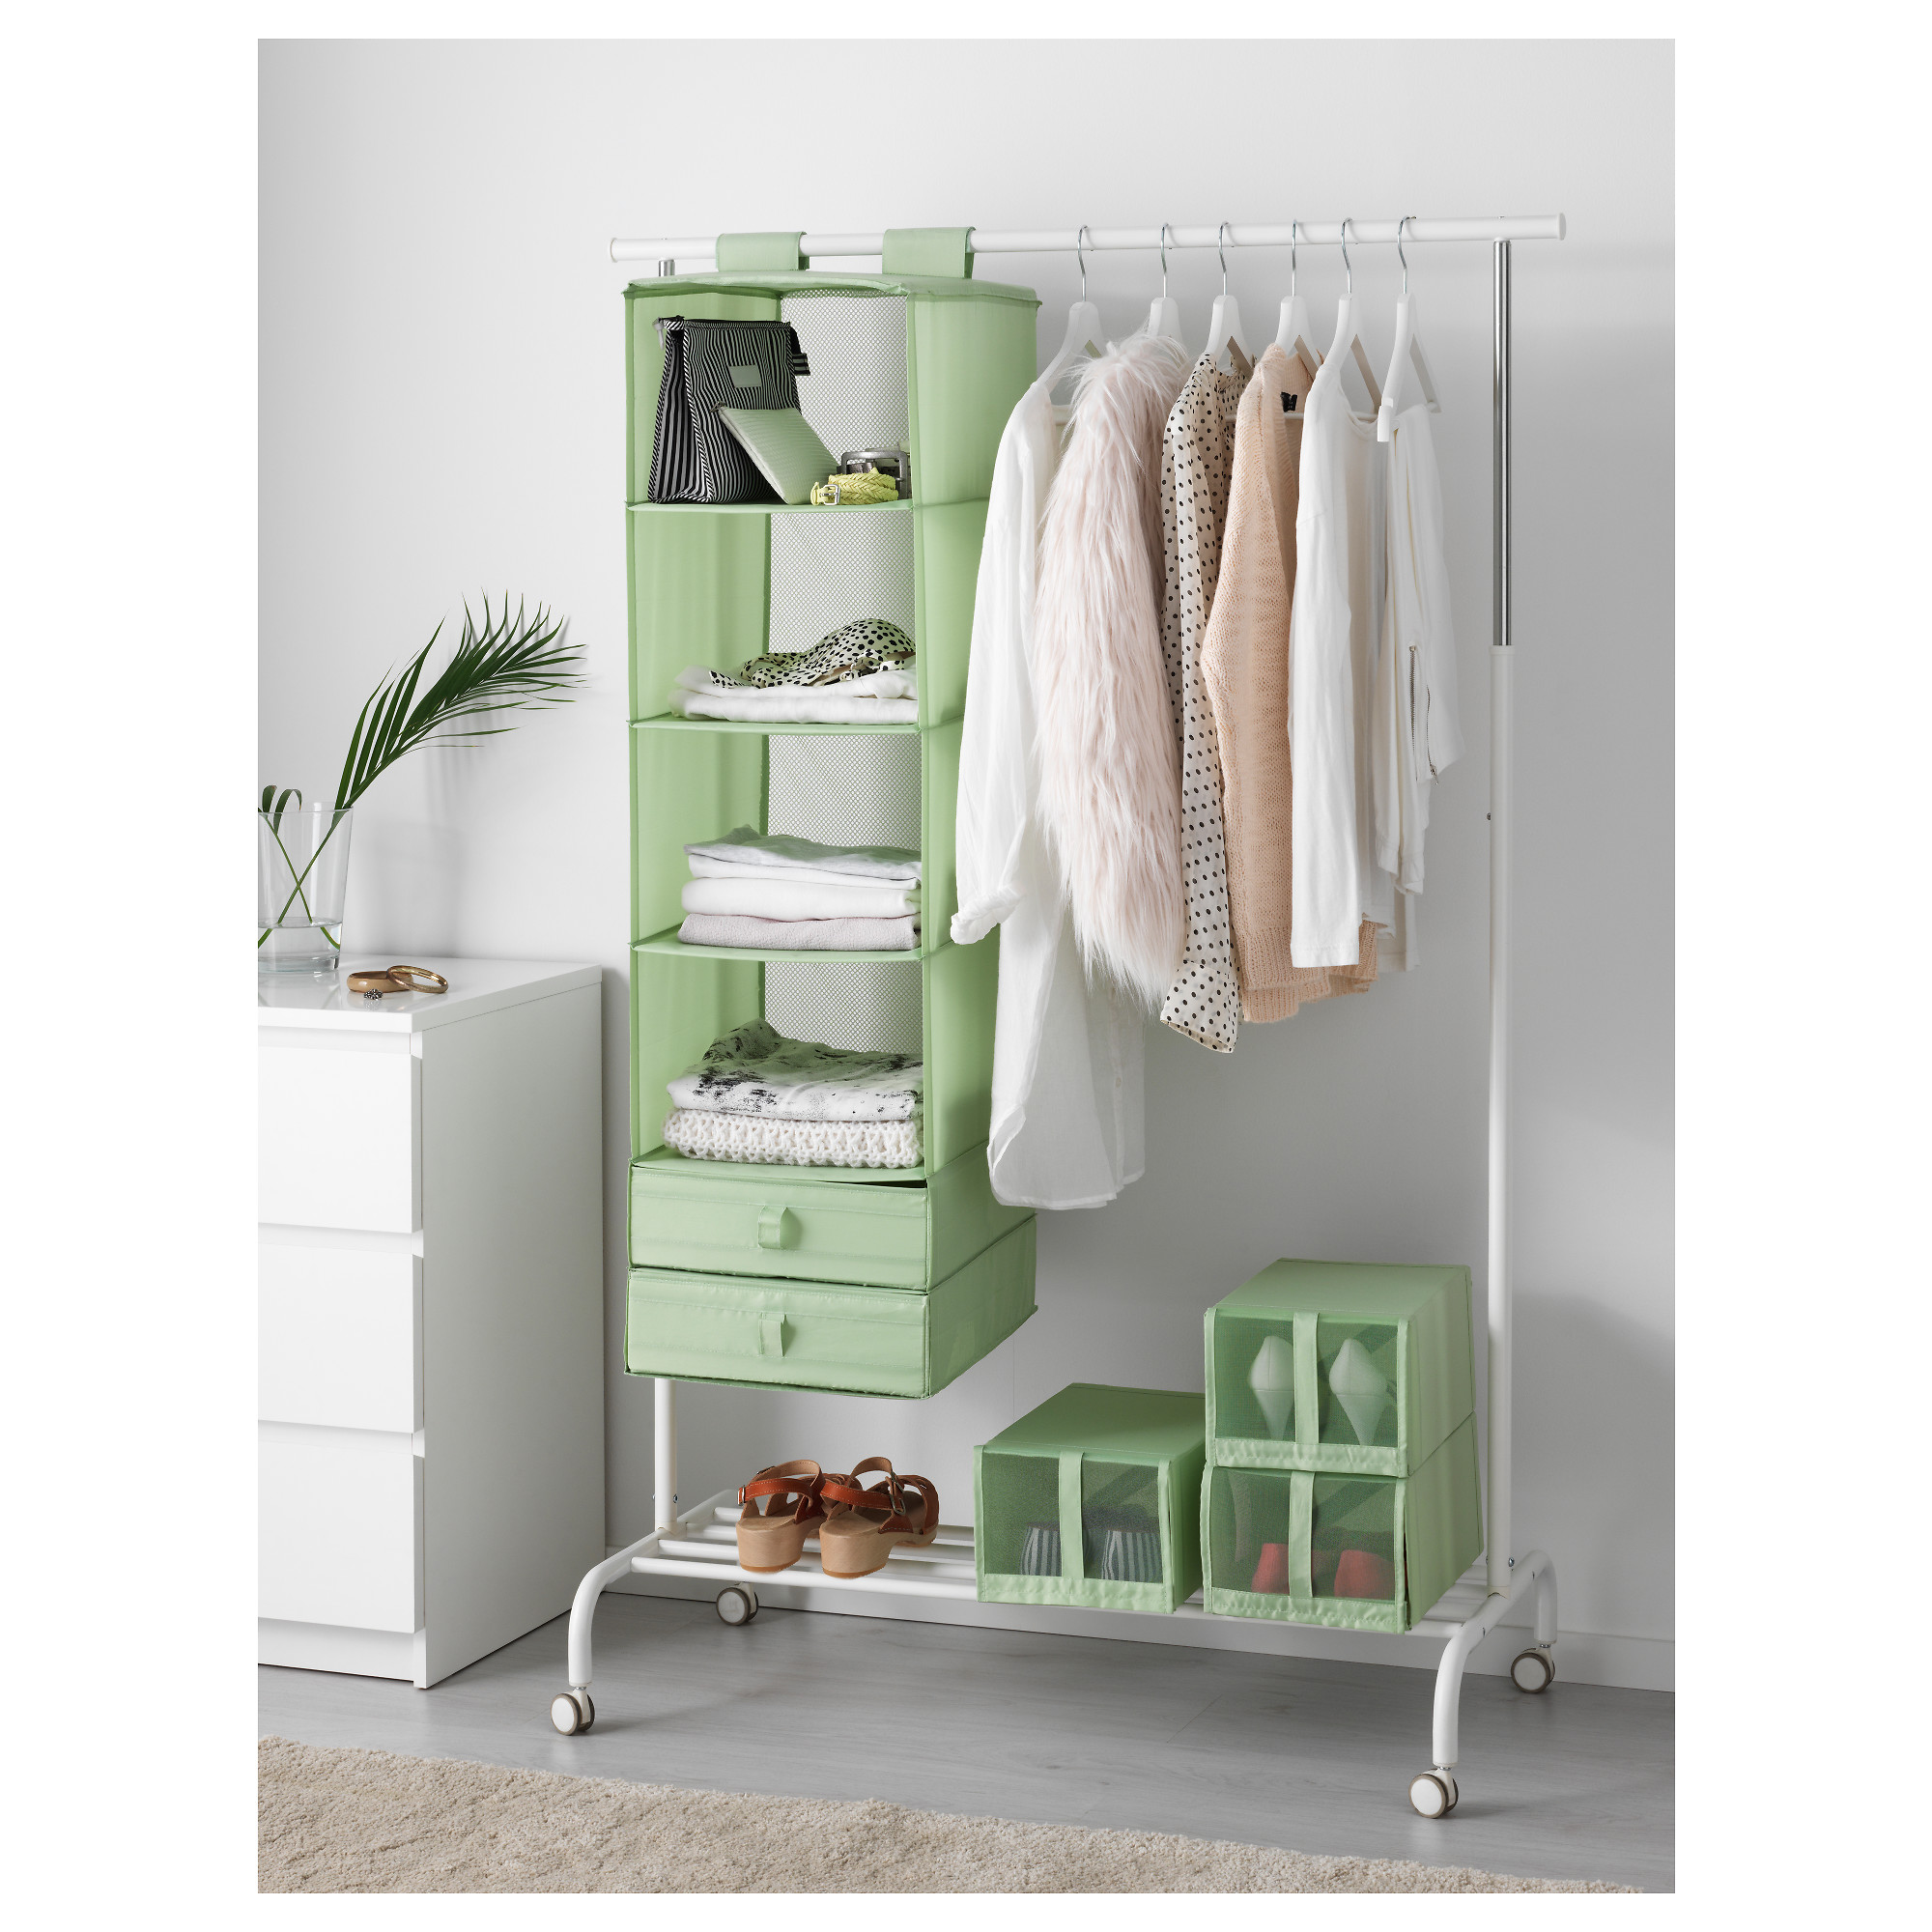 12 super creative storage ideas for small spaces for Wardrobe organizer ikea